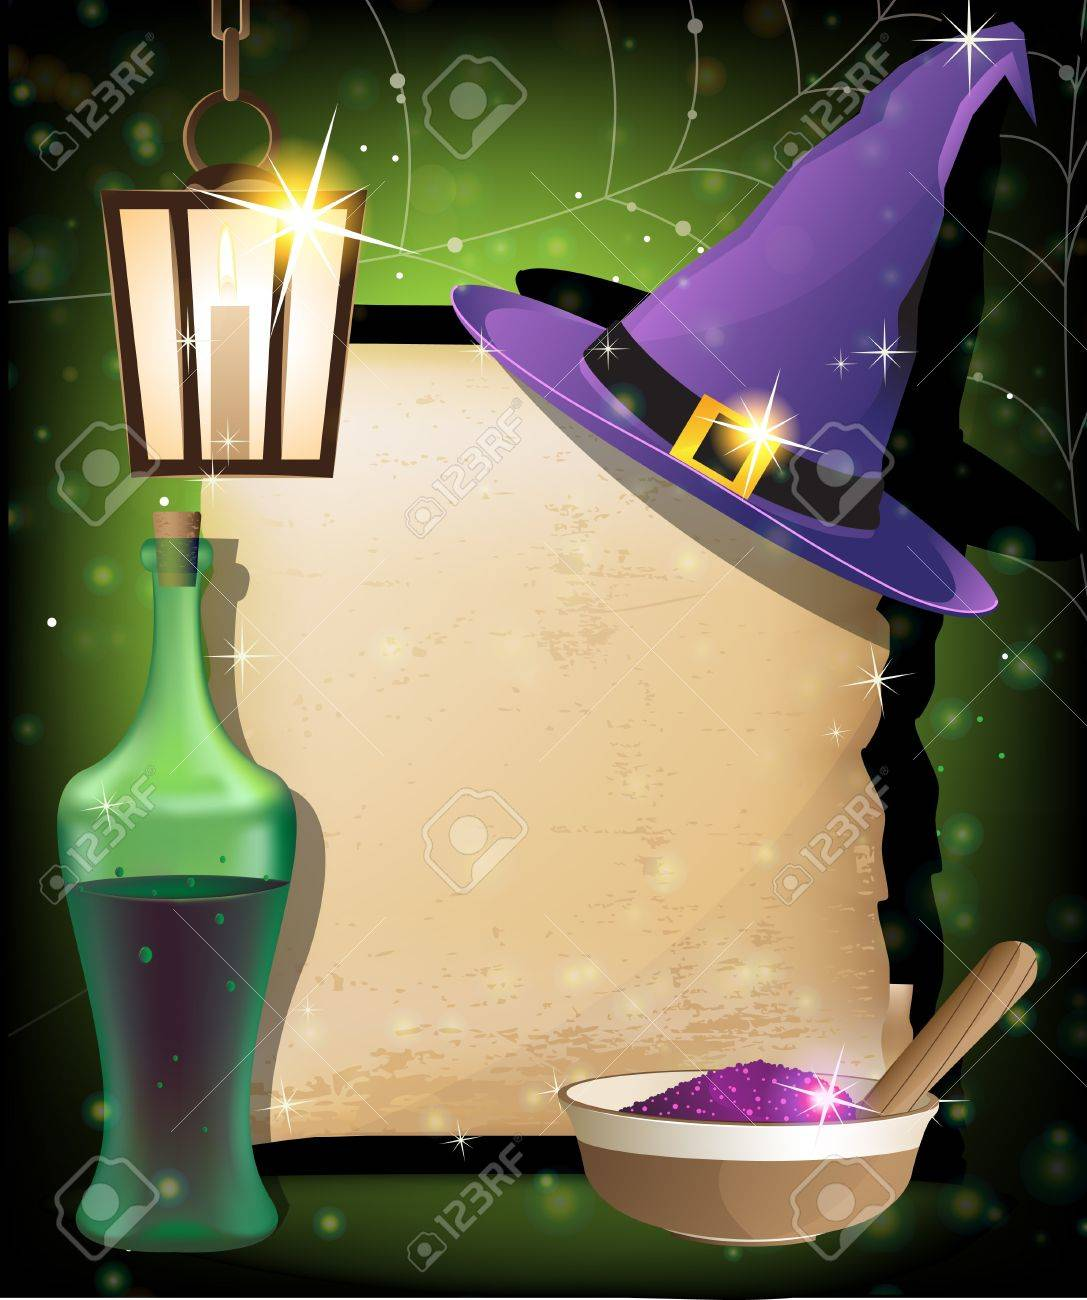 Witch hat, lantern, bottle of potion,  mortar with powder and ancient manuscript on a sparkling background  Magic accessories Stock Vector - 15095001